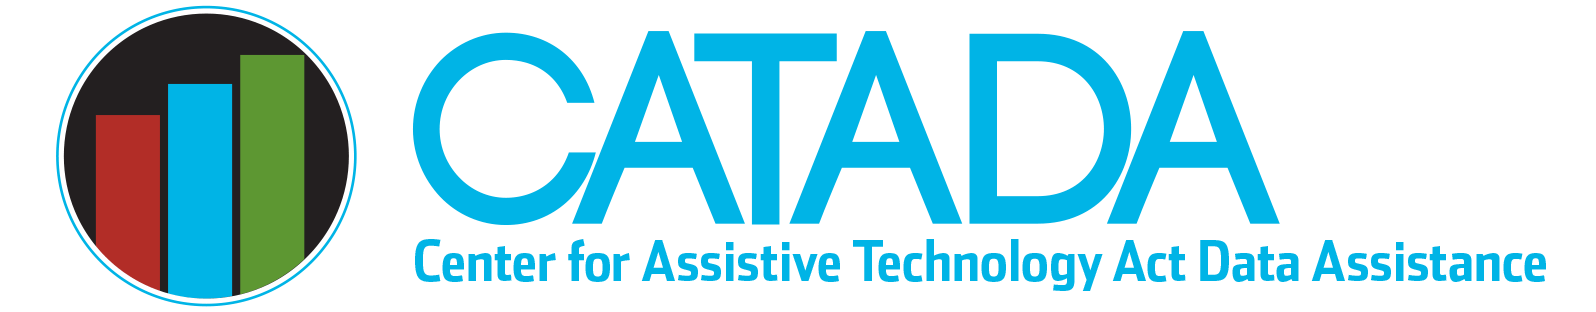 Center for Assistive Technology Act Data Assistance